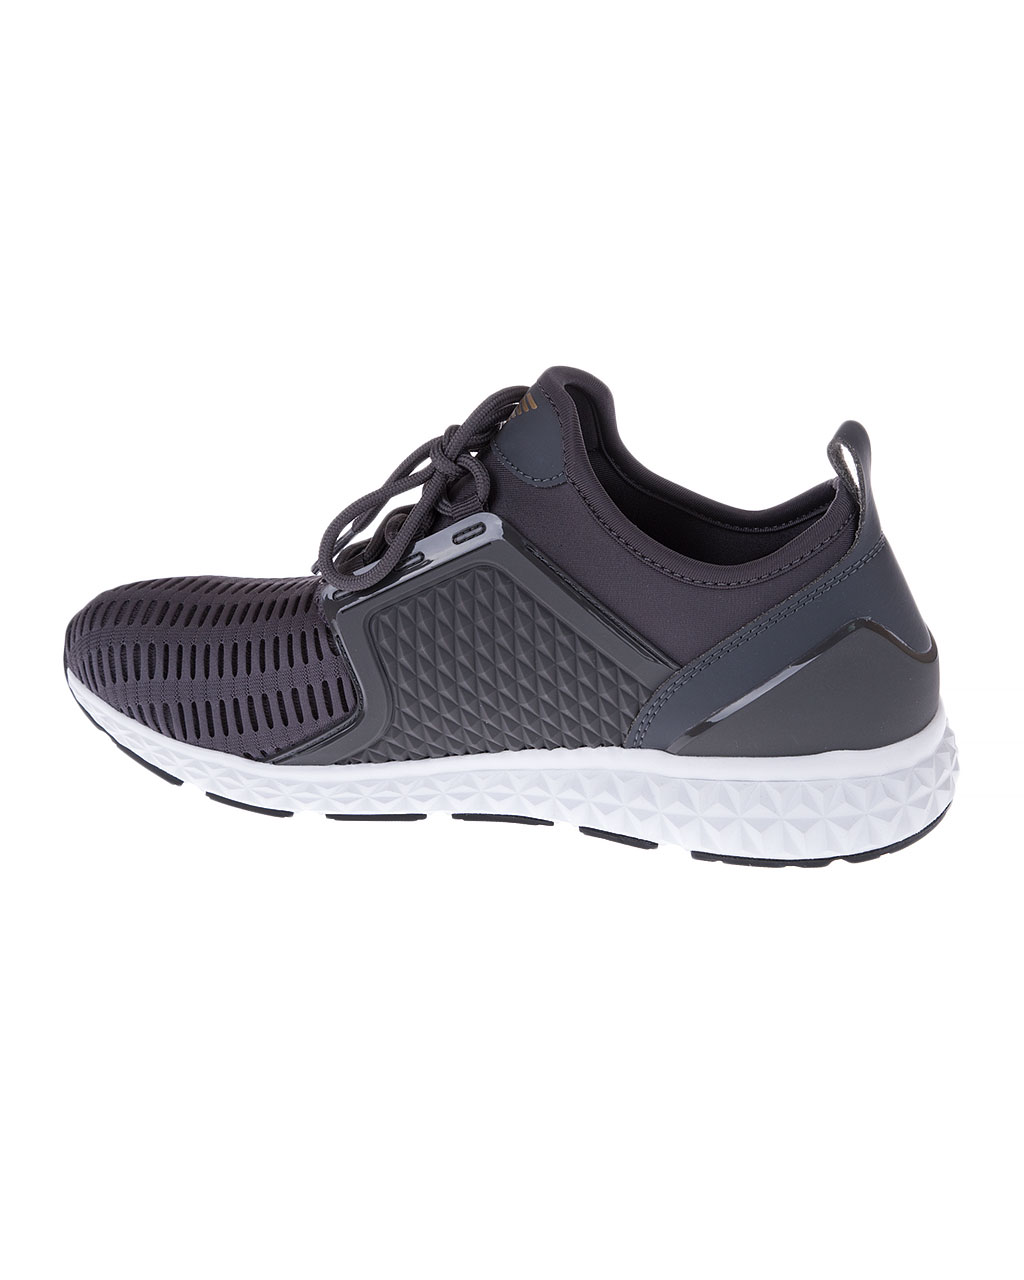 Men's shoes X8X012-XK056-G356/92-3 (4)